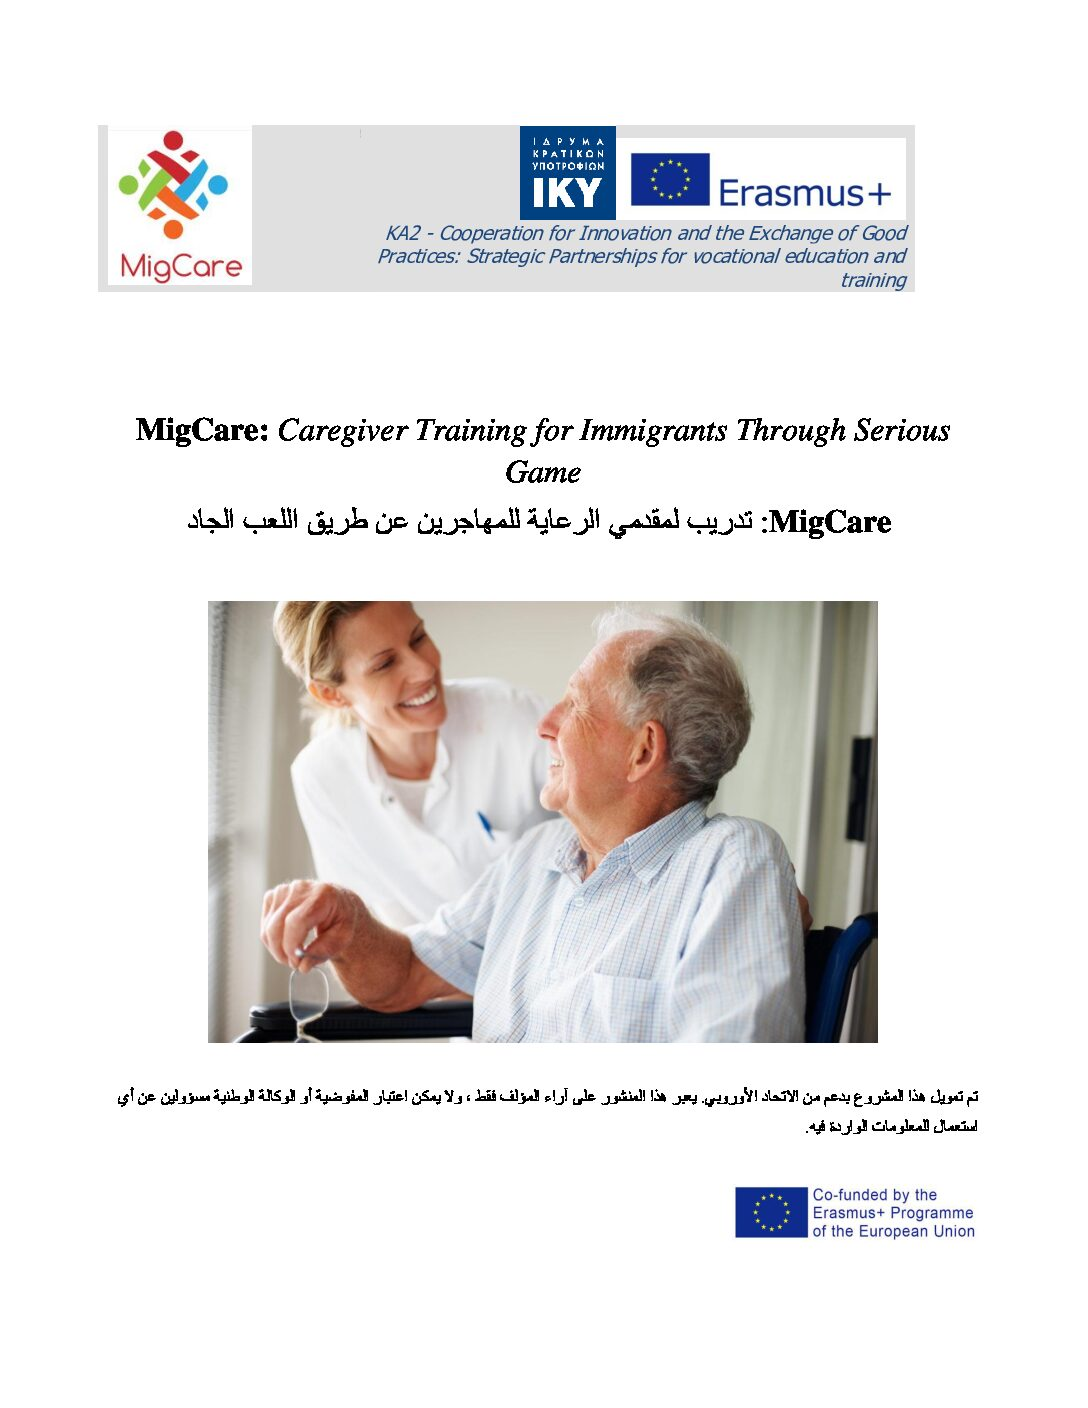 MigCare Online Academy